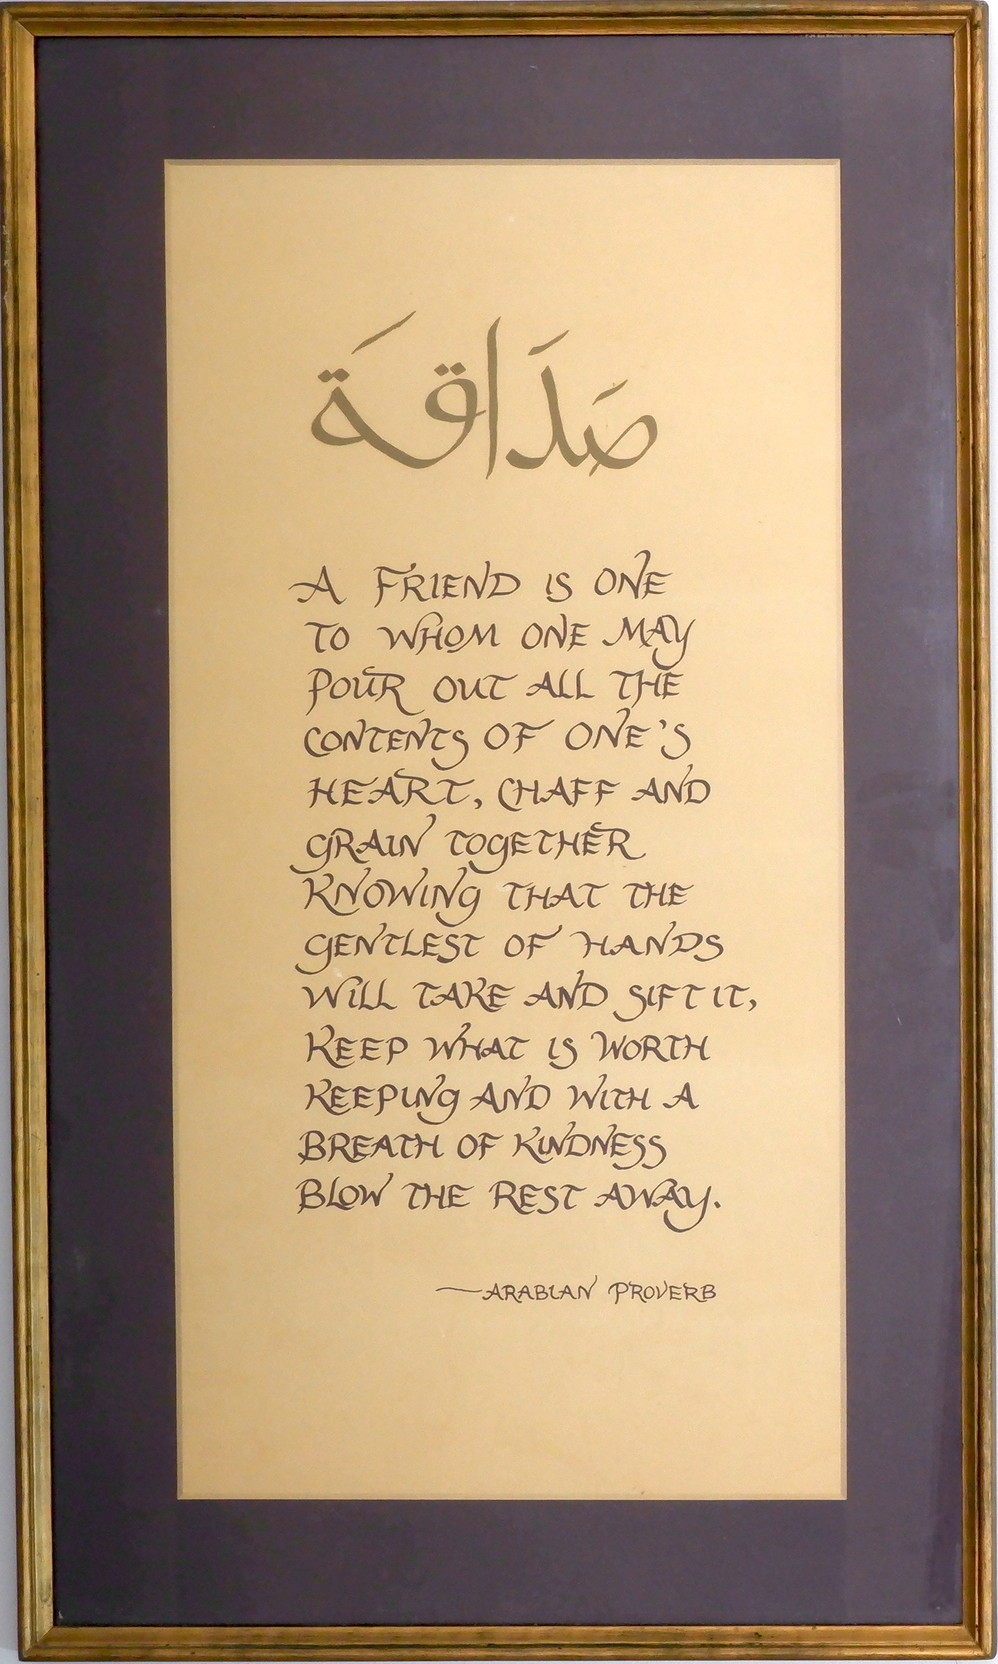 'Framed Arabian Proverb'